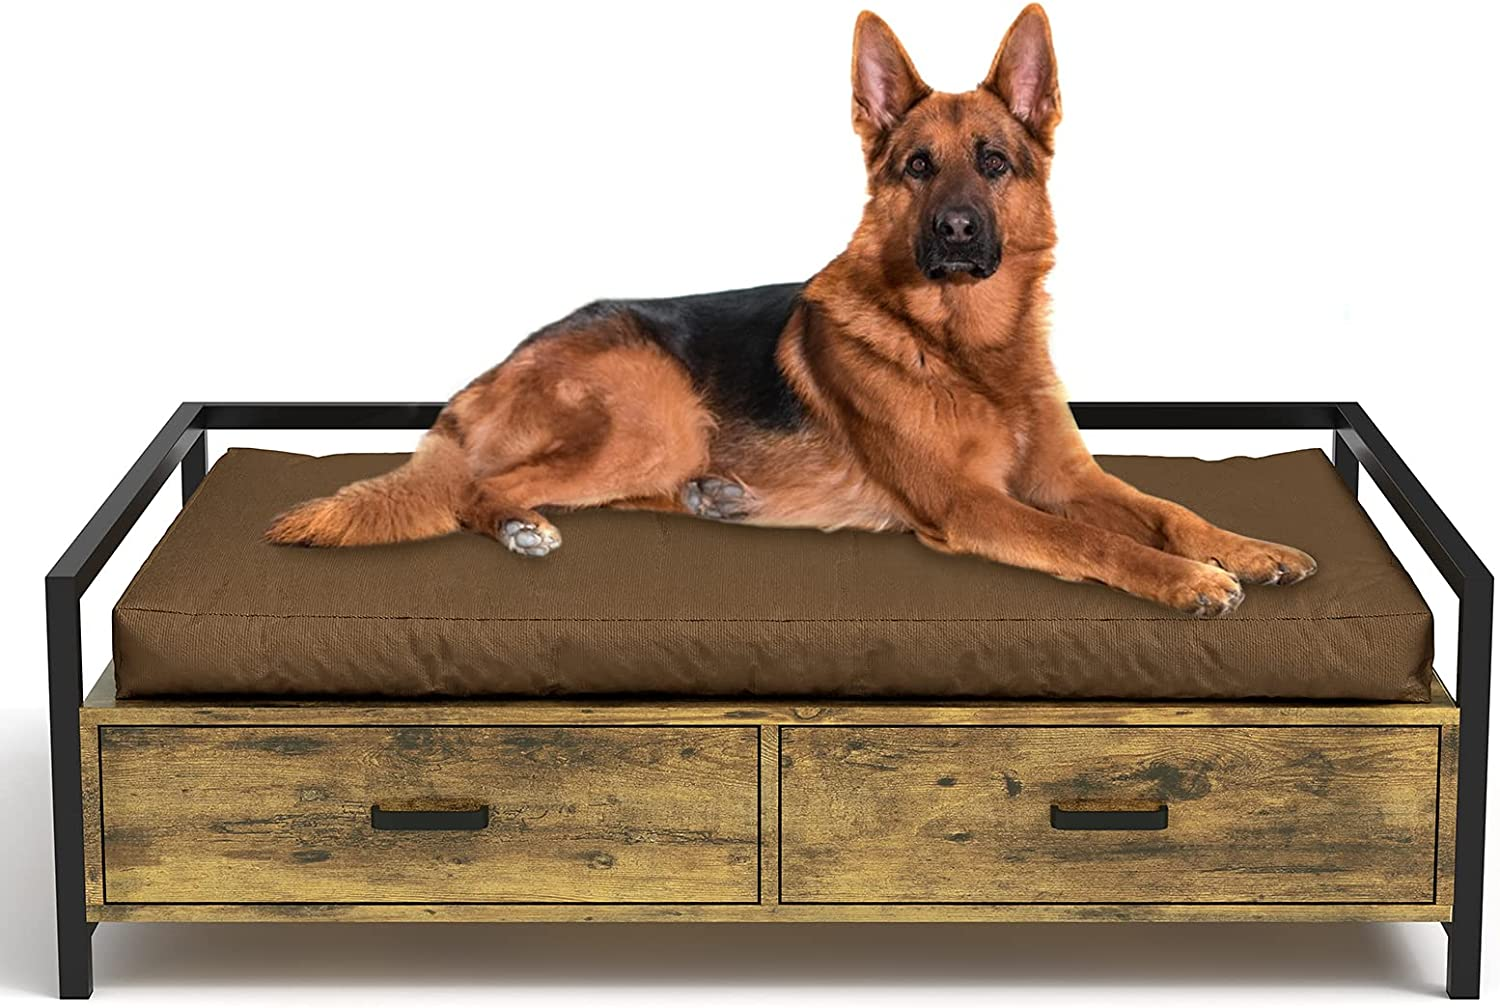 MSMASK Elevated Dog Beds Frame, Dogs Cats Sofa Chair with Drawer, Modern Style Wood and Iron Frame Dog Furniture